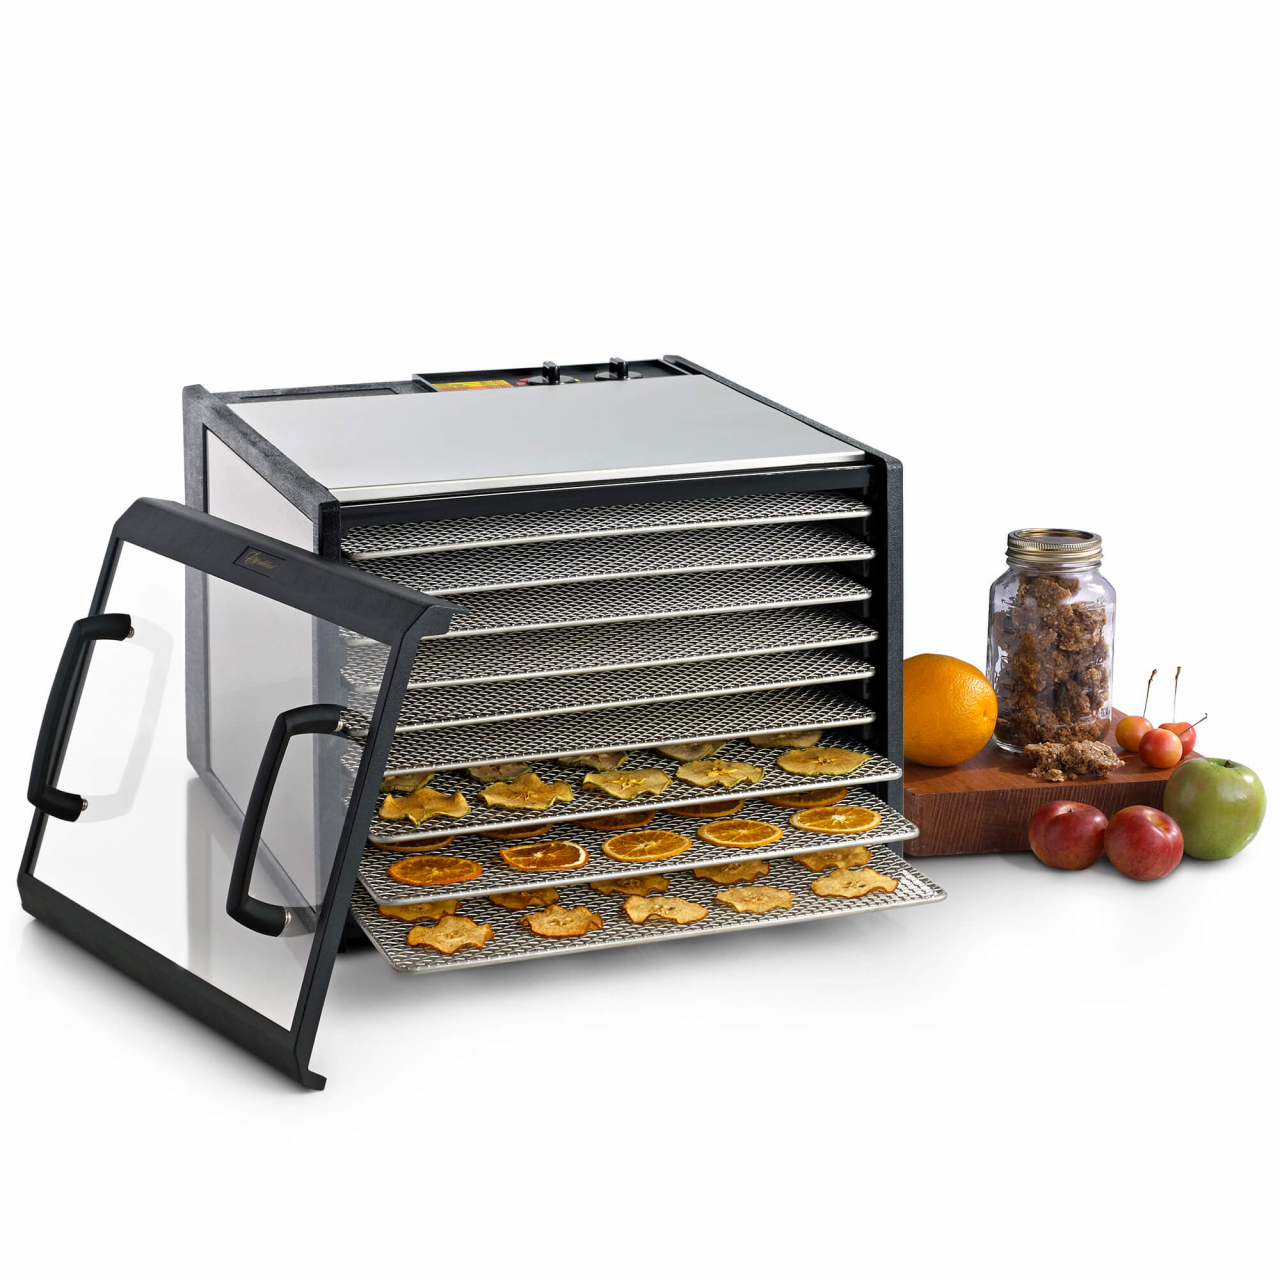 D902CDSHD Stainless Steel 9 Tray Excalibur Dehydrator